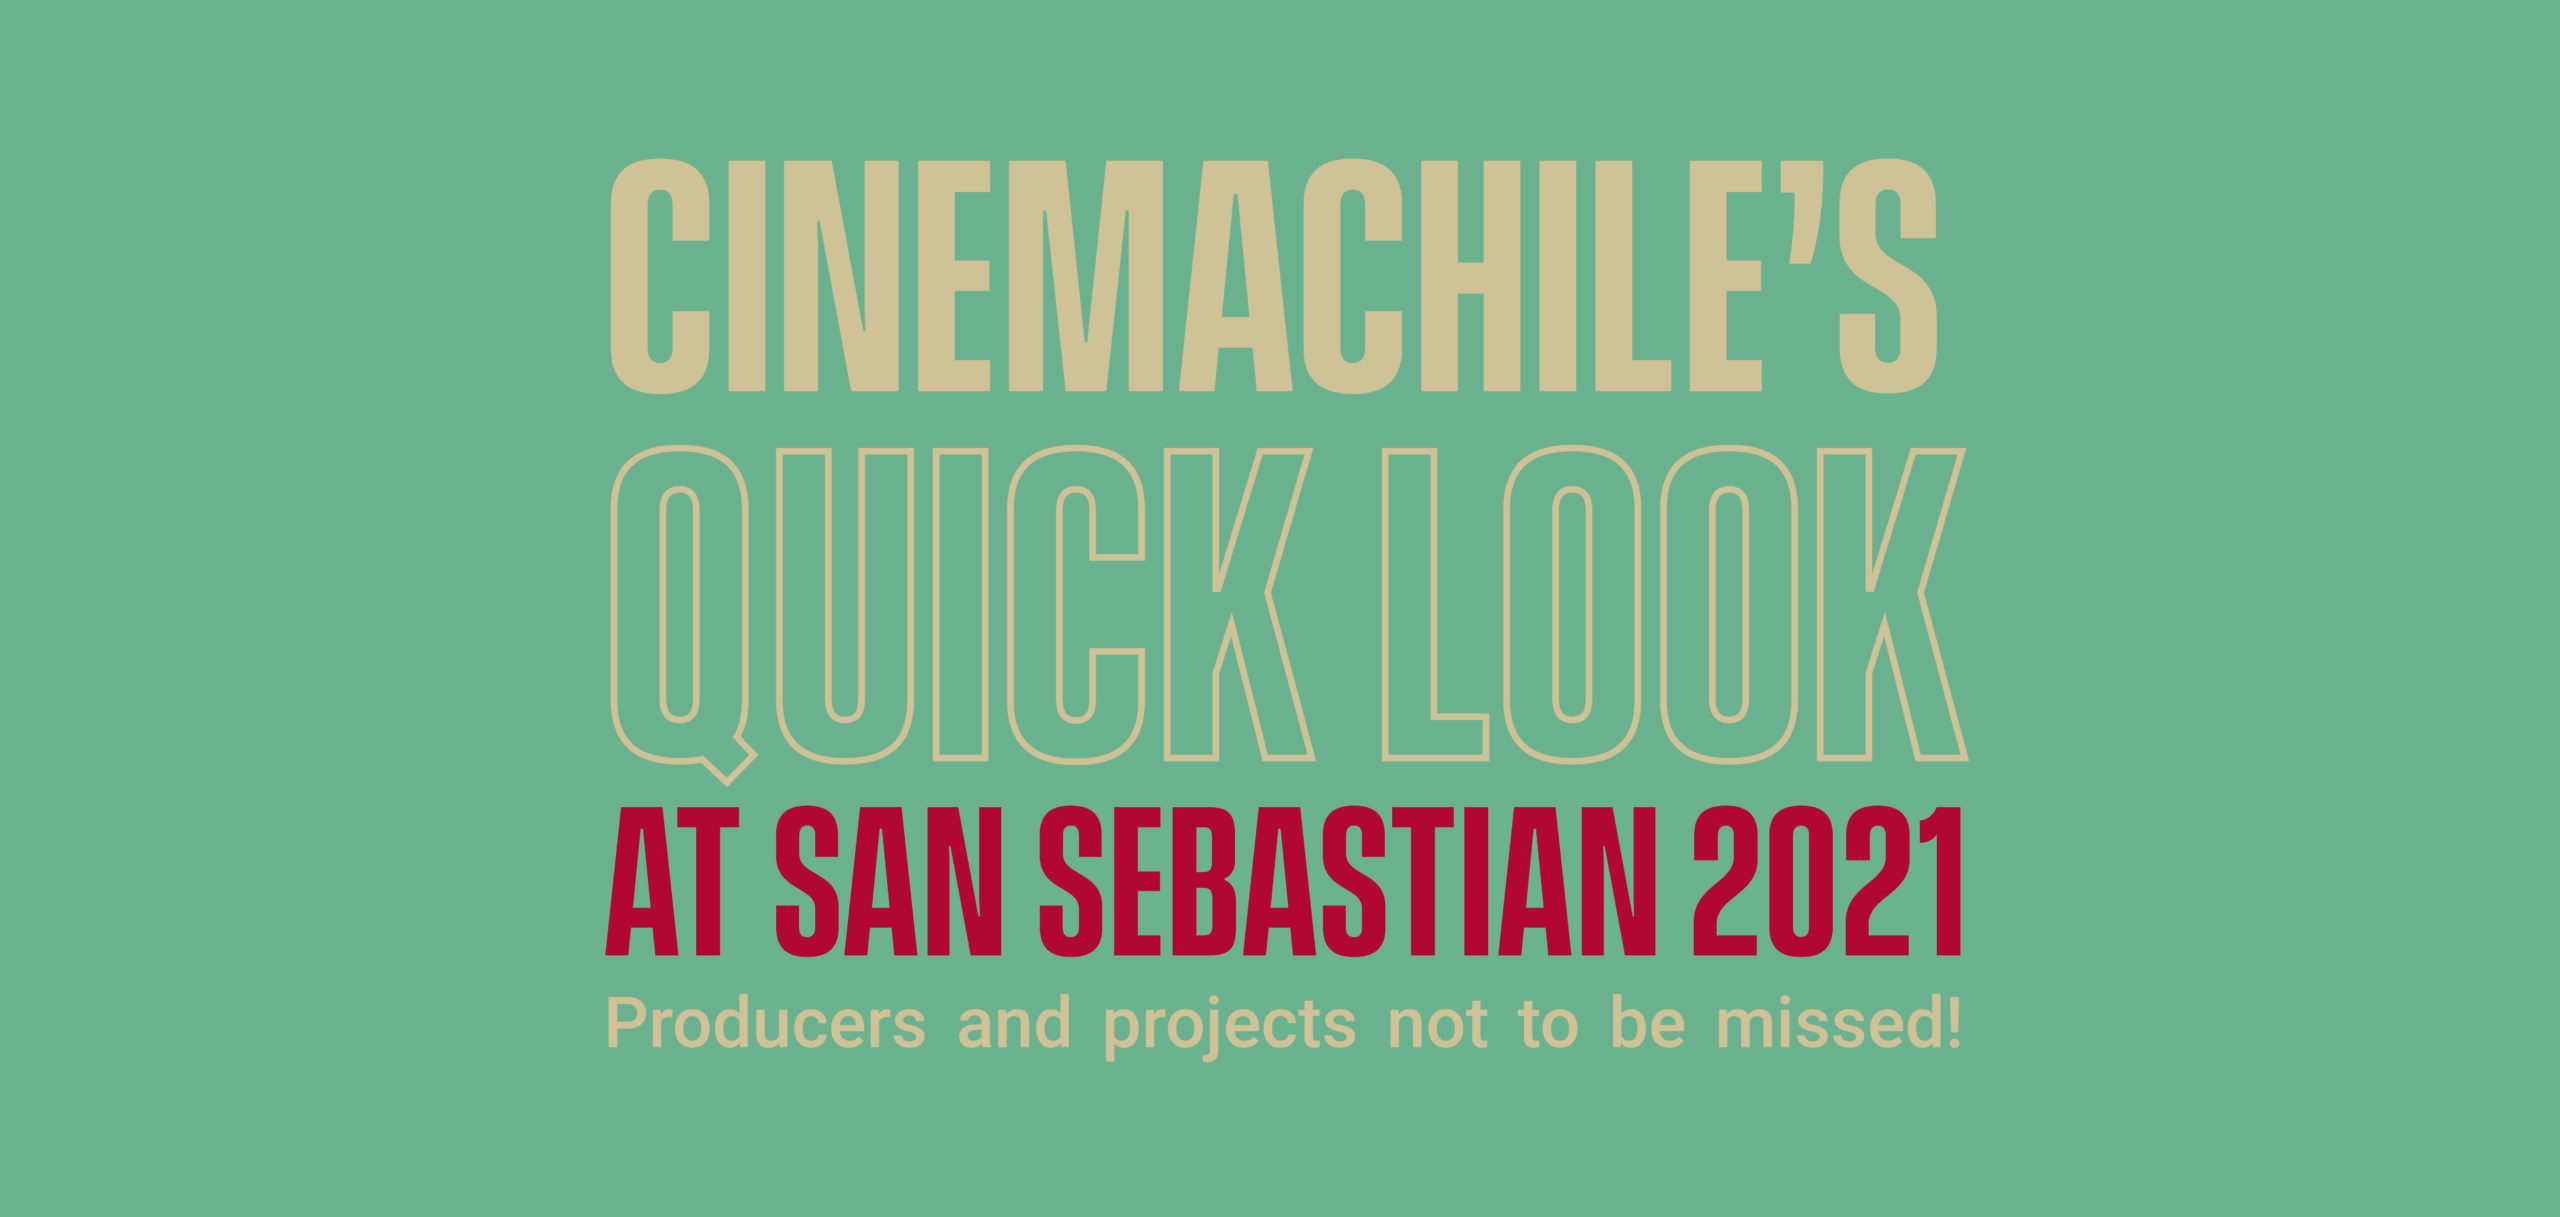 CINEMACHILE'S QUICK LOOK AT SAN SEBASTIÁN 2021: PRODUCERS AND PROJECTS YOU CAN'T MISS!